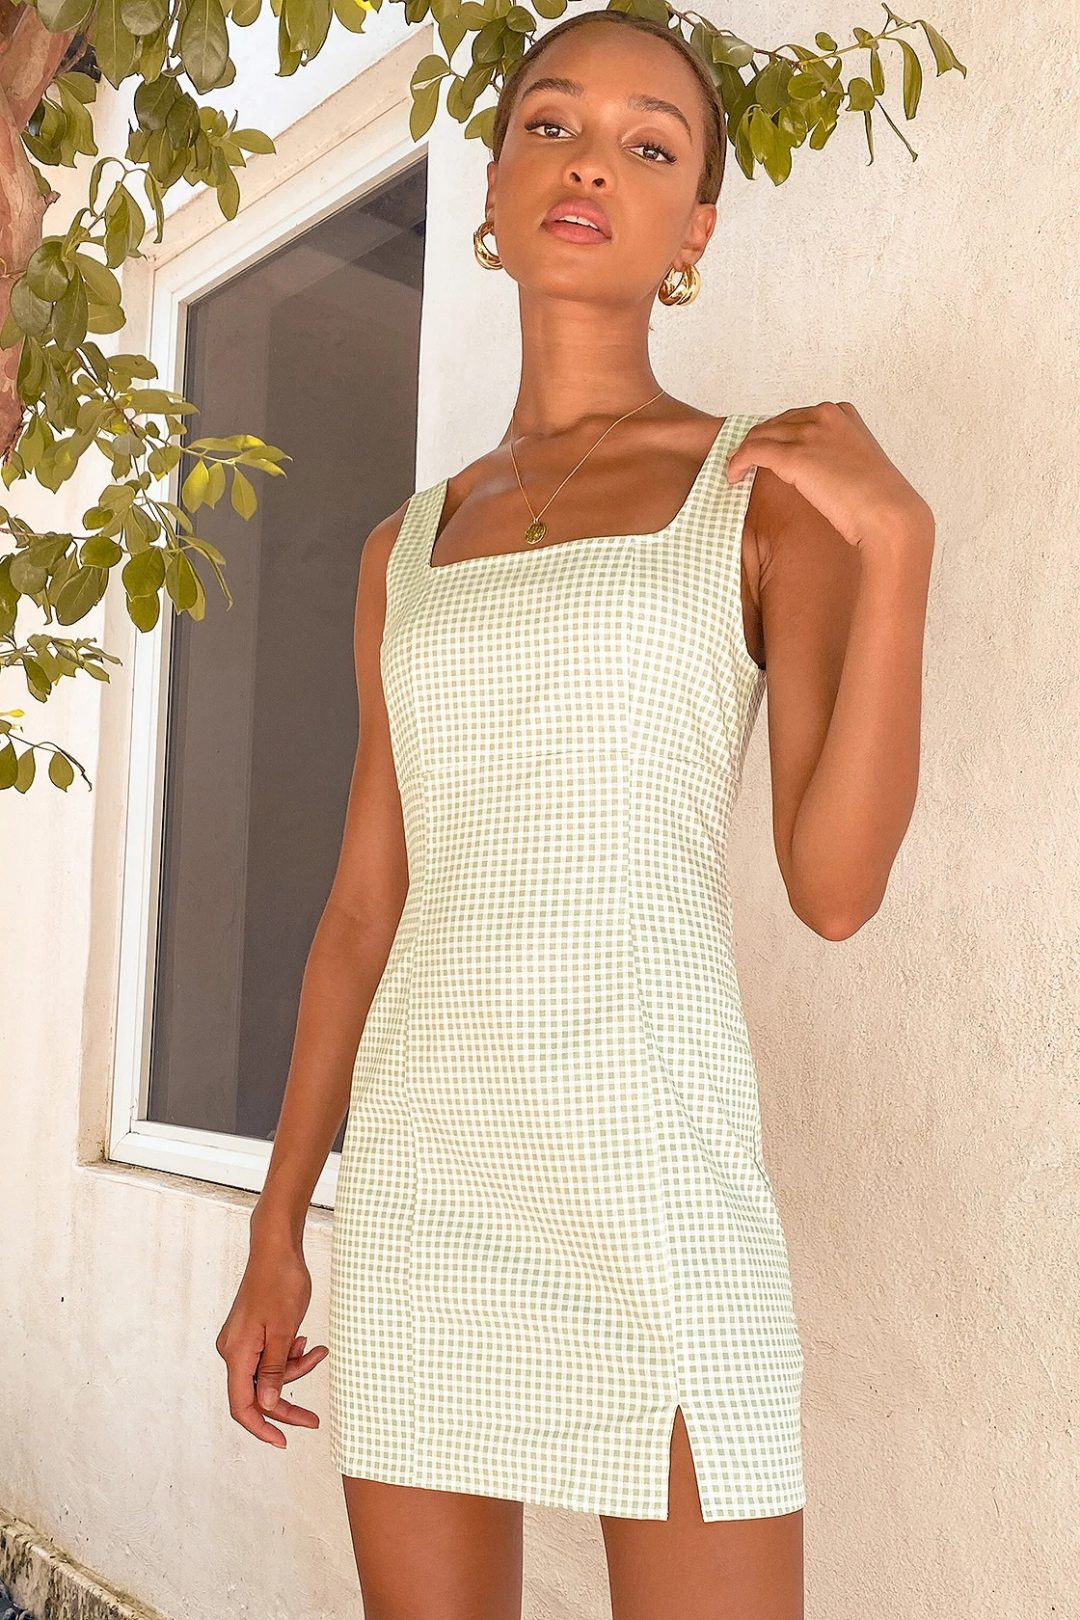 Simple gingham dress for casual dinner date